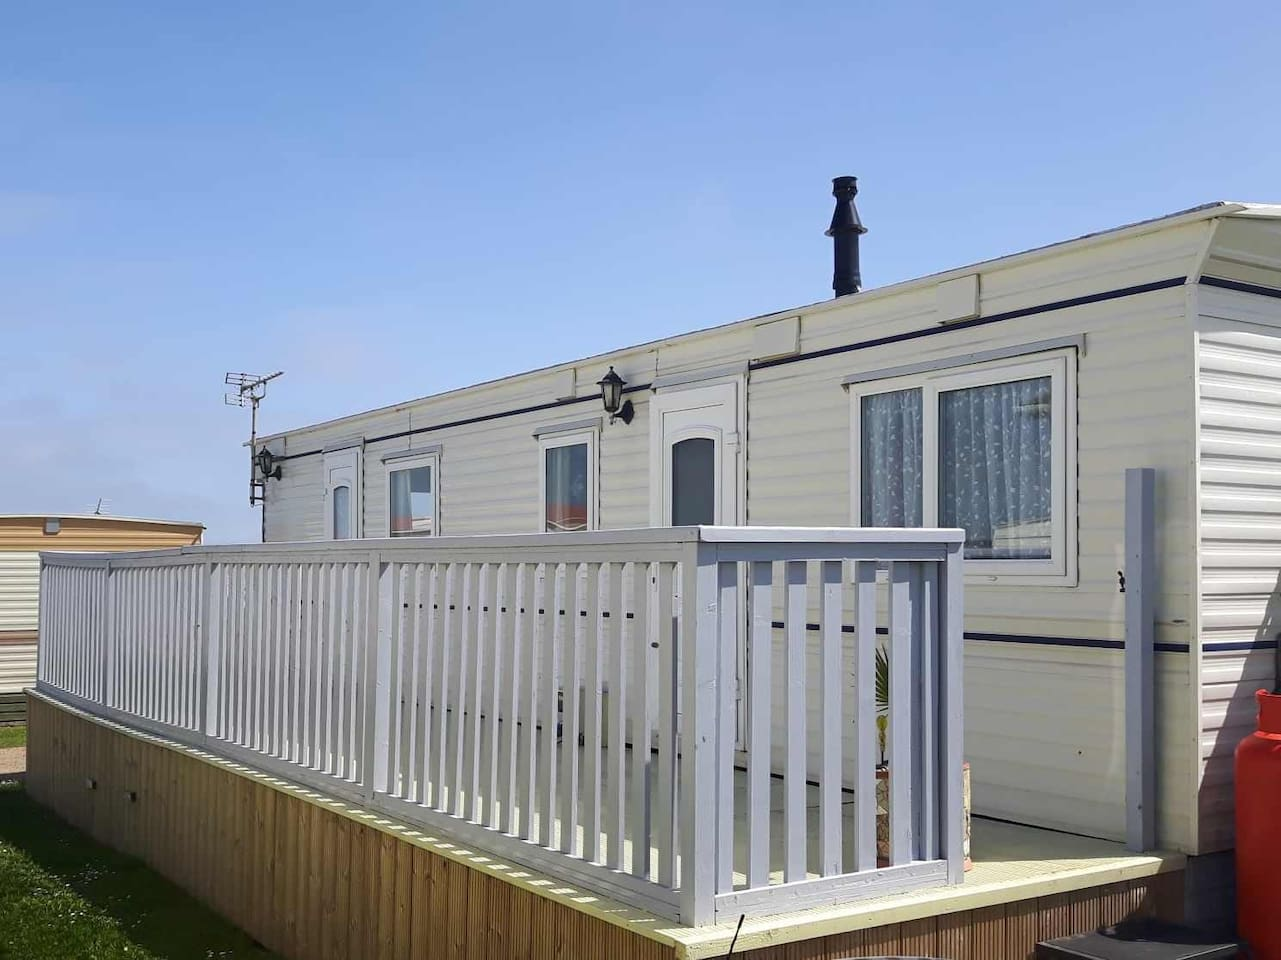 Our cosy little caravan is very relaxing  with sea veiws  we are dog freindly  clean and comtible  fully eqquiped with central heating so nice and warm  double glazed hope you book as you will truley have a lovely time zoe and nick